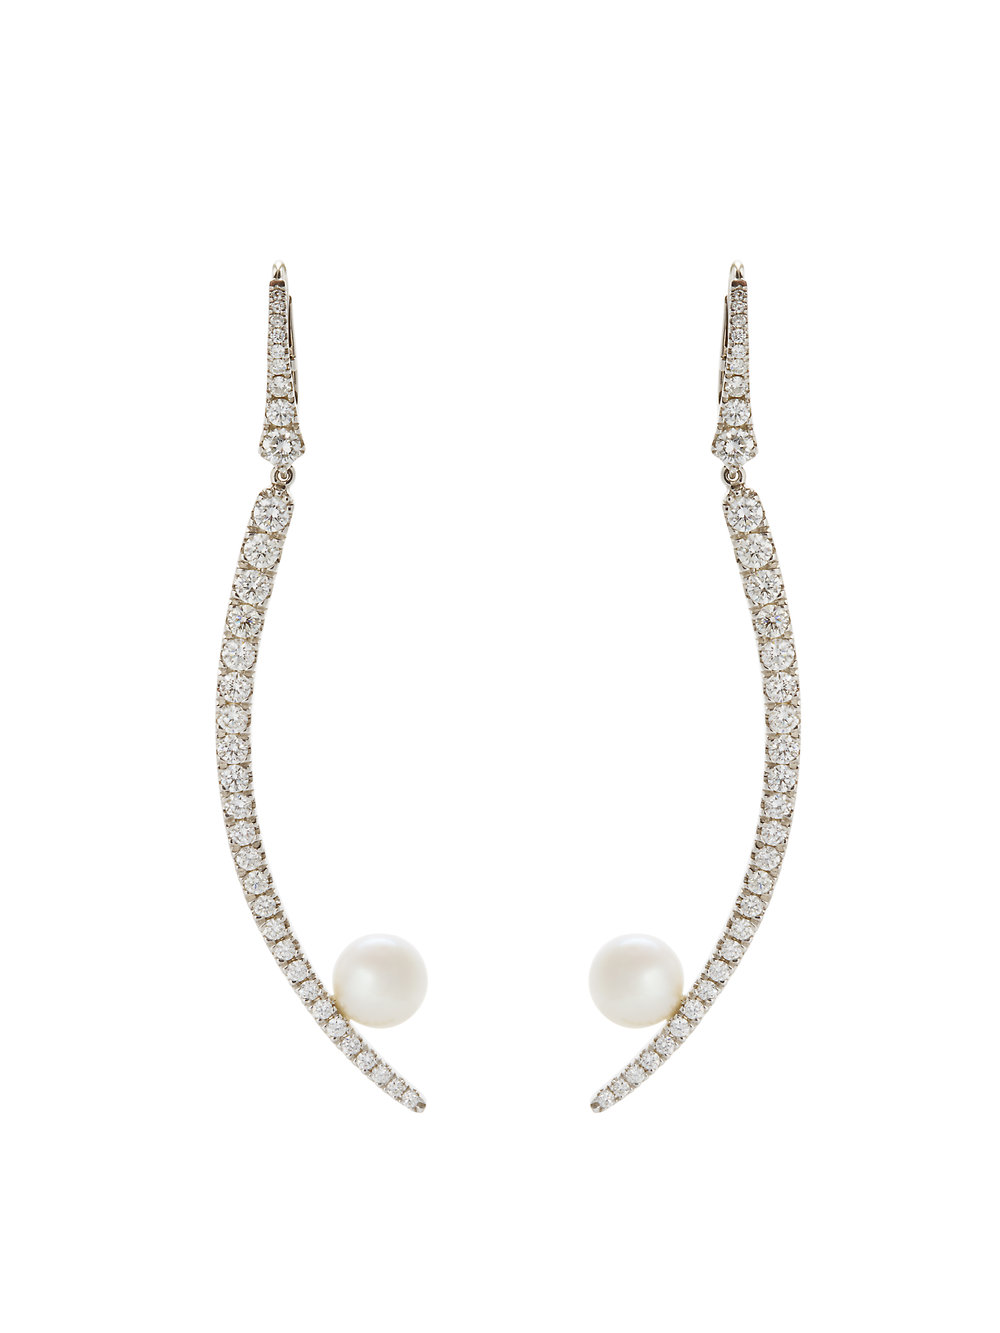 LAUREN EARRINGS   4.53 CT OF DIAMONDS SOUTH SEA PEARLS      Contact for inquiry